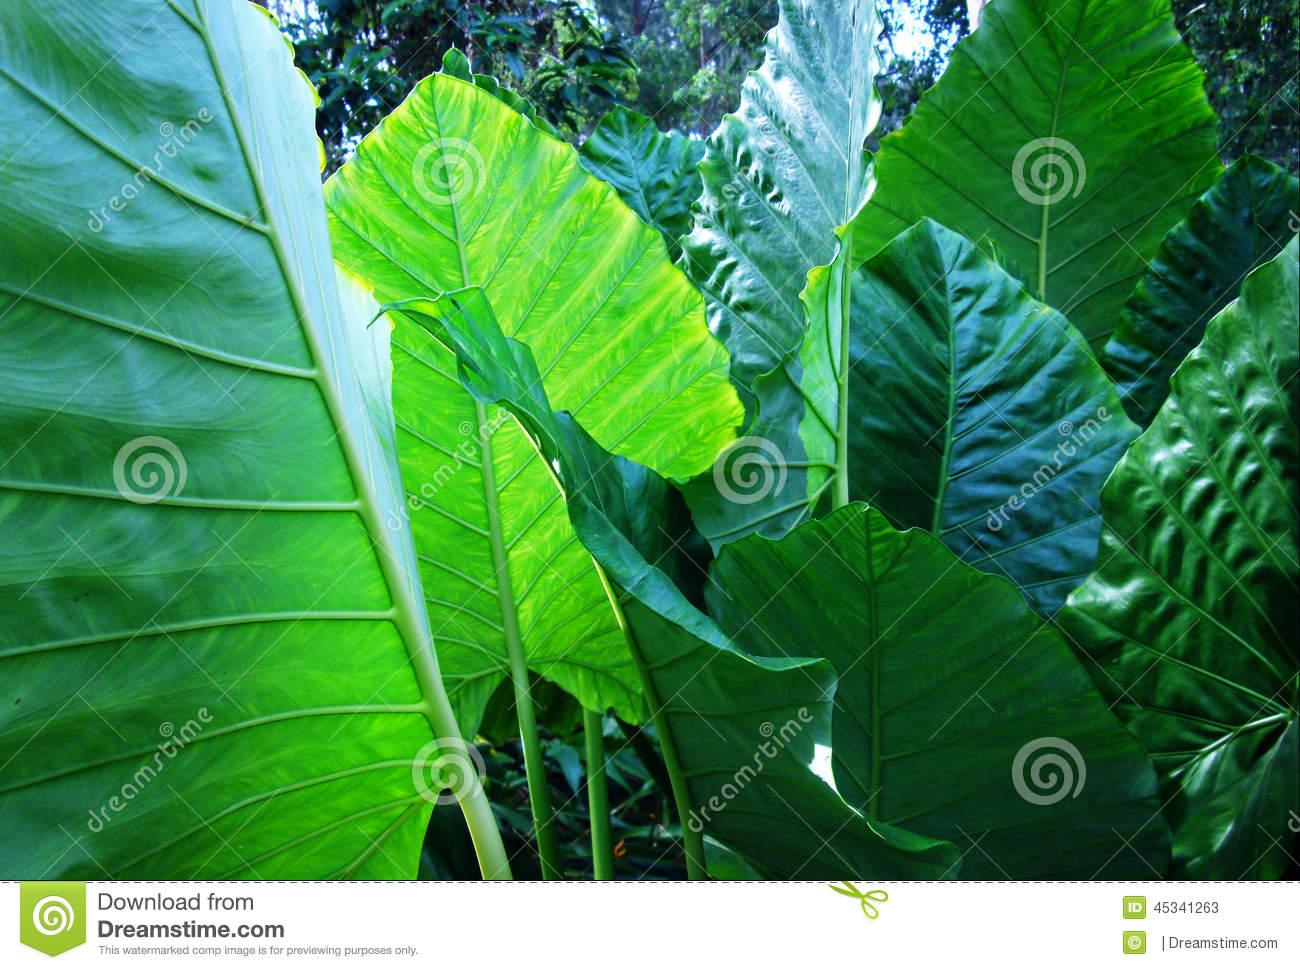 Plante tropicale verte photo stock image 45341263 for Grandes plantes vertes